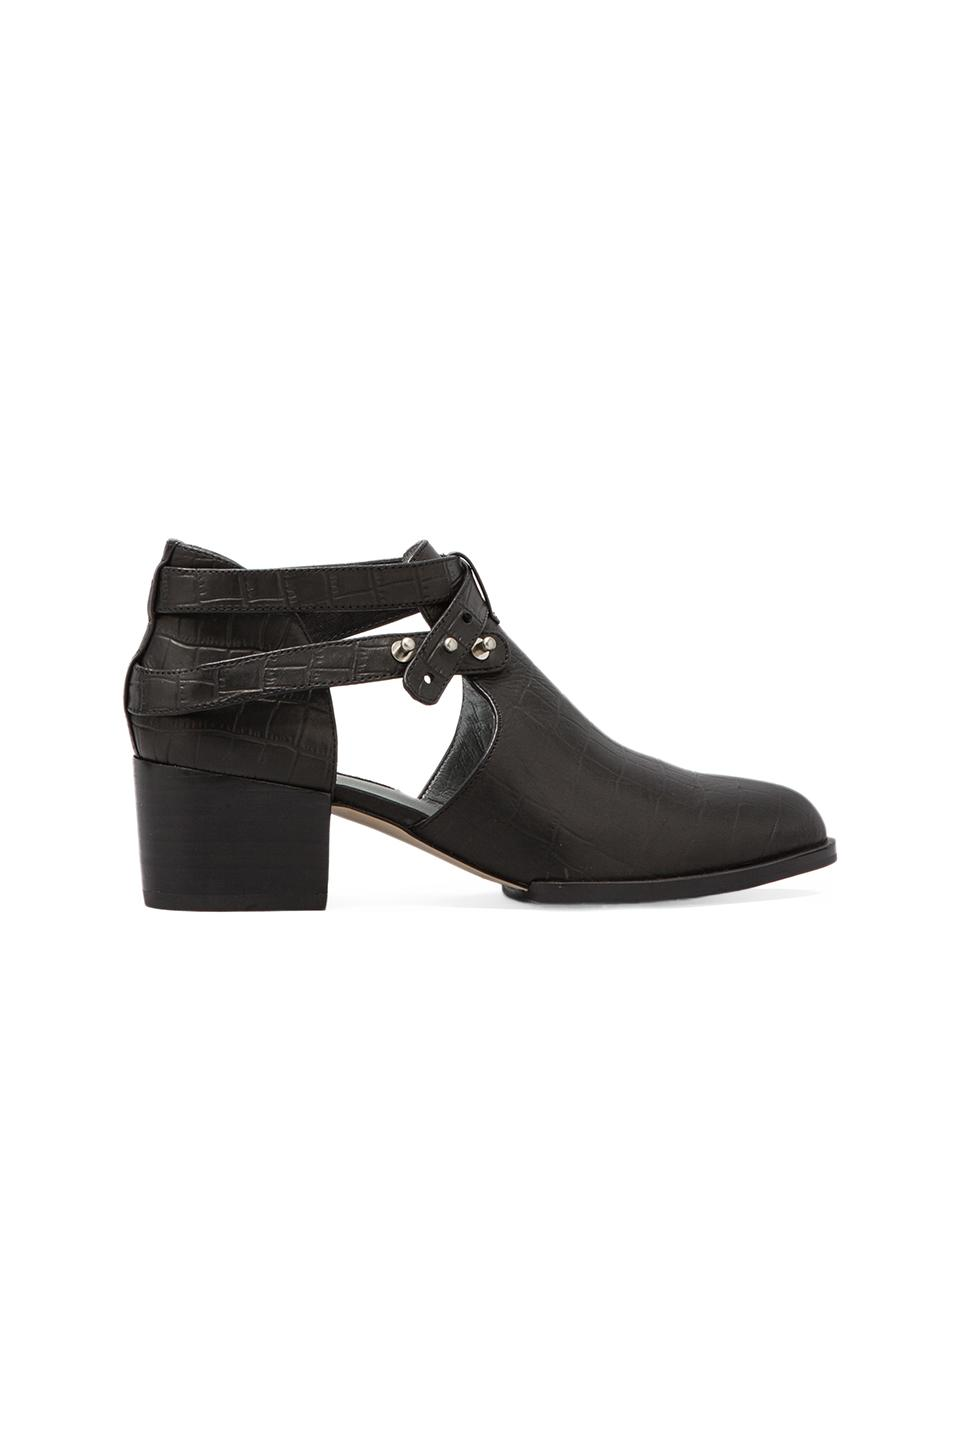 SENSO Qimat Bootie in Black